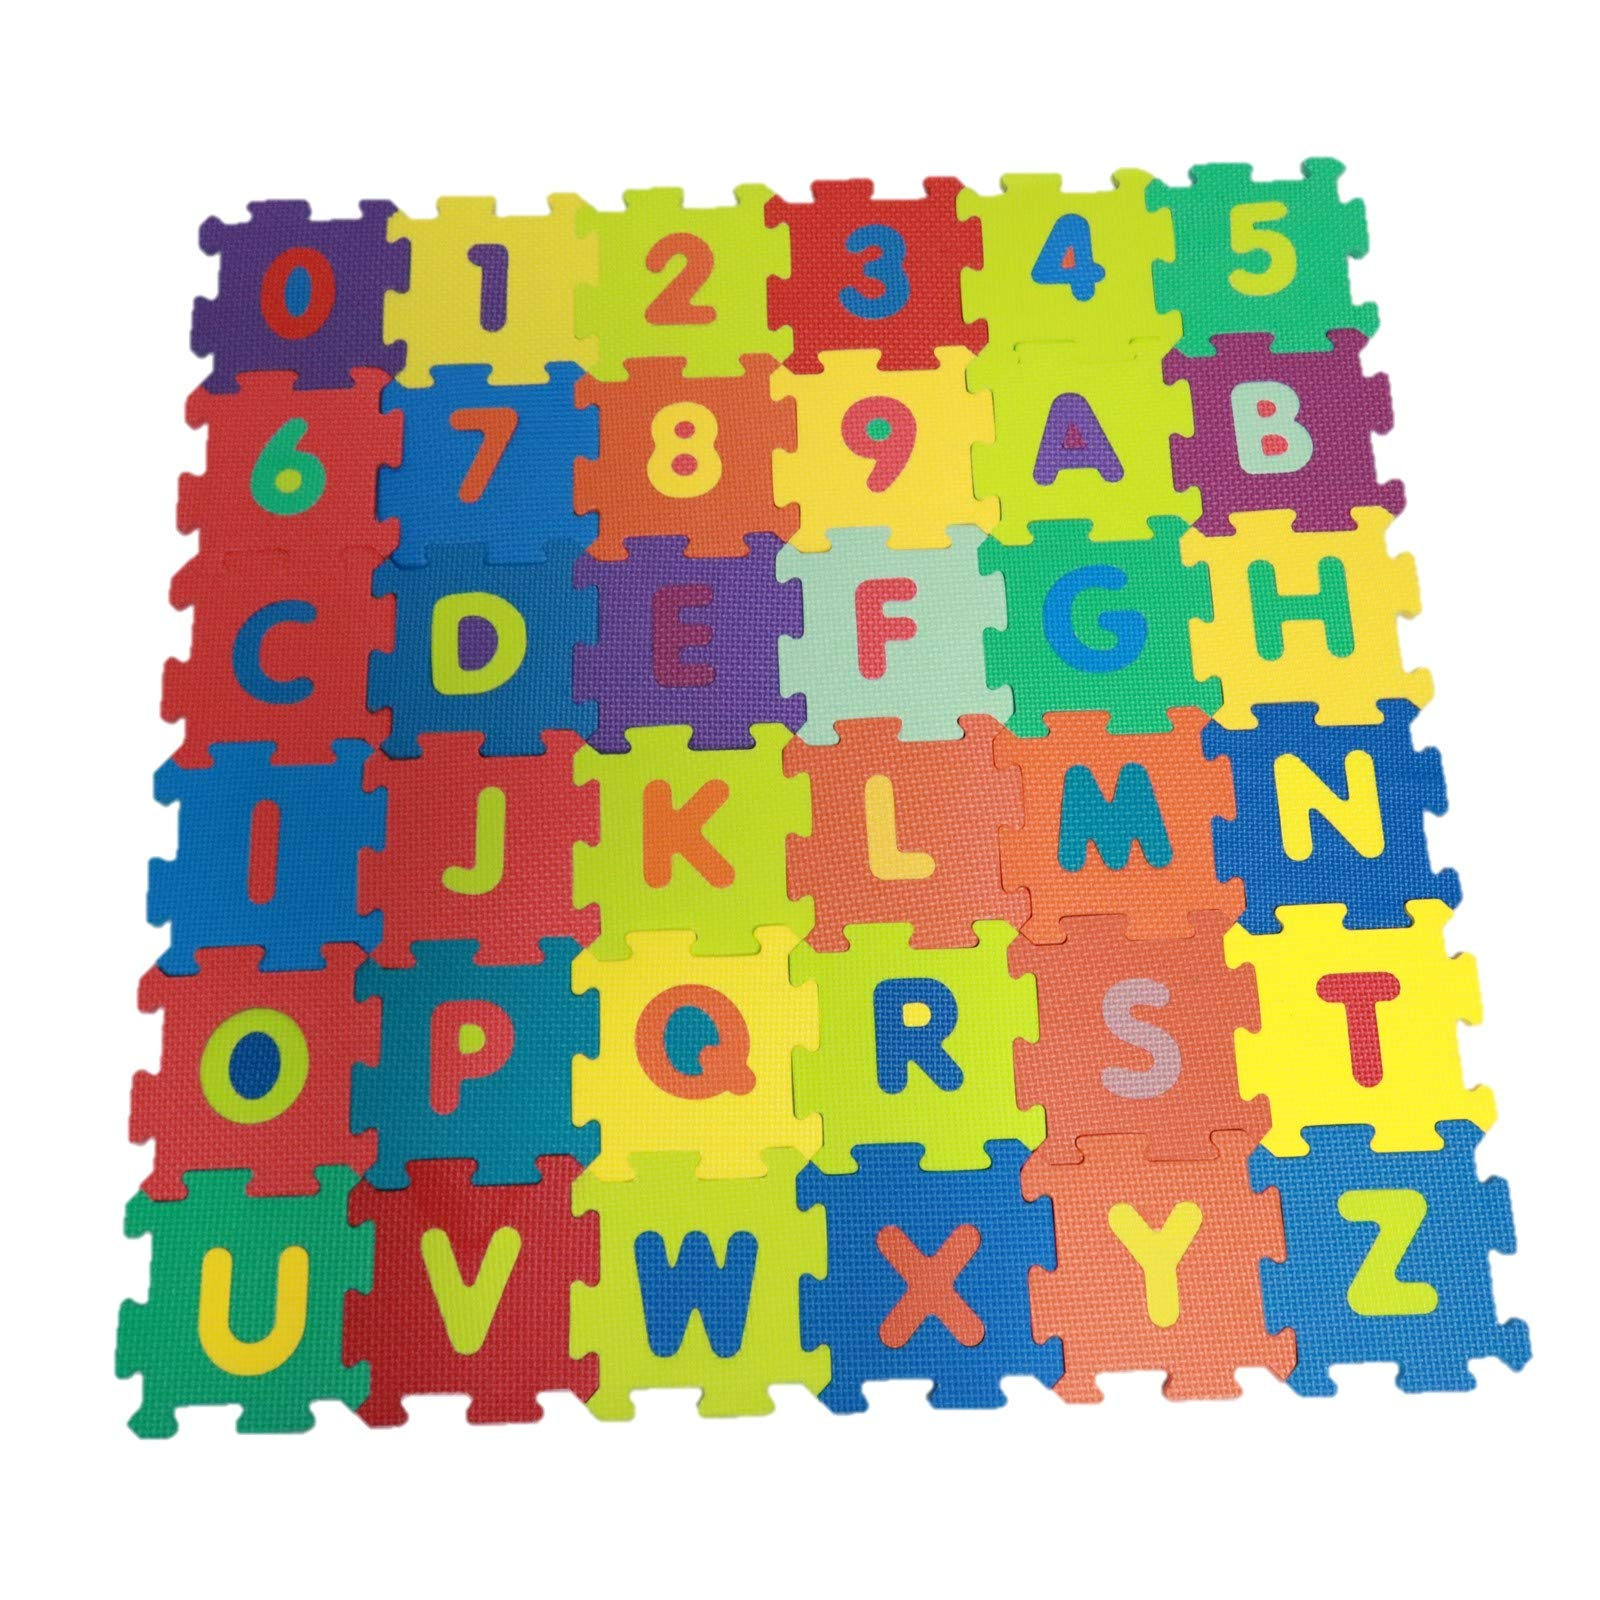 Vokodo Kids 36 Piece Alphabet and Numeric Play Mat Set Colorful Floor Puzzle Interlocking EVA Foam Tiles Children Playroom Toys Building Construction Creative Imagination for Boys Girls by Vokodo